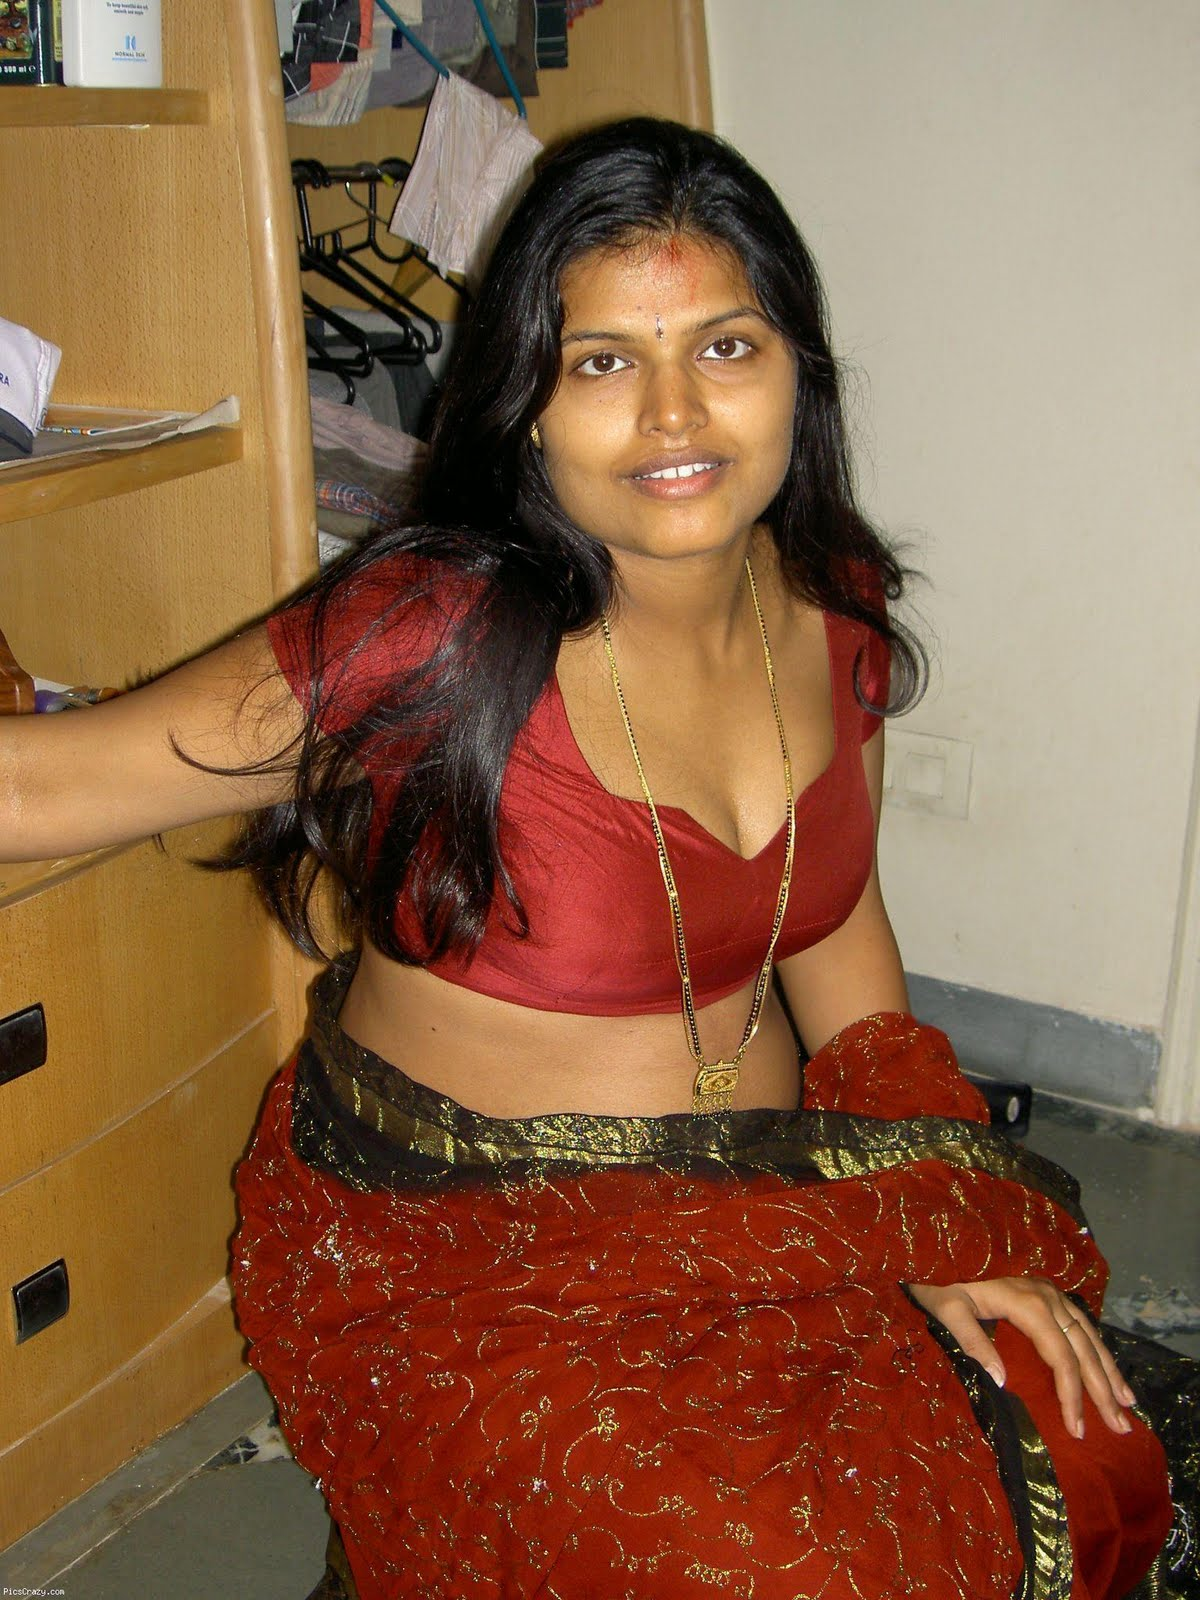 Naked pics of indian ladies